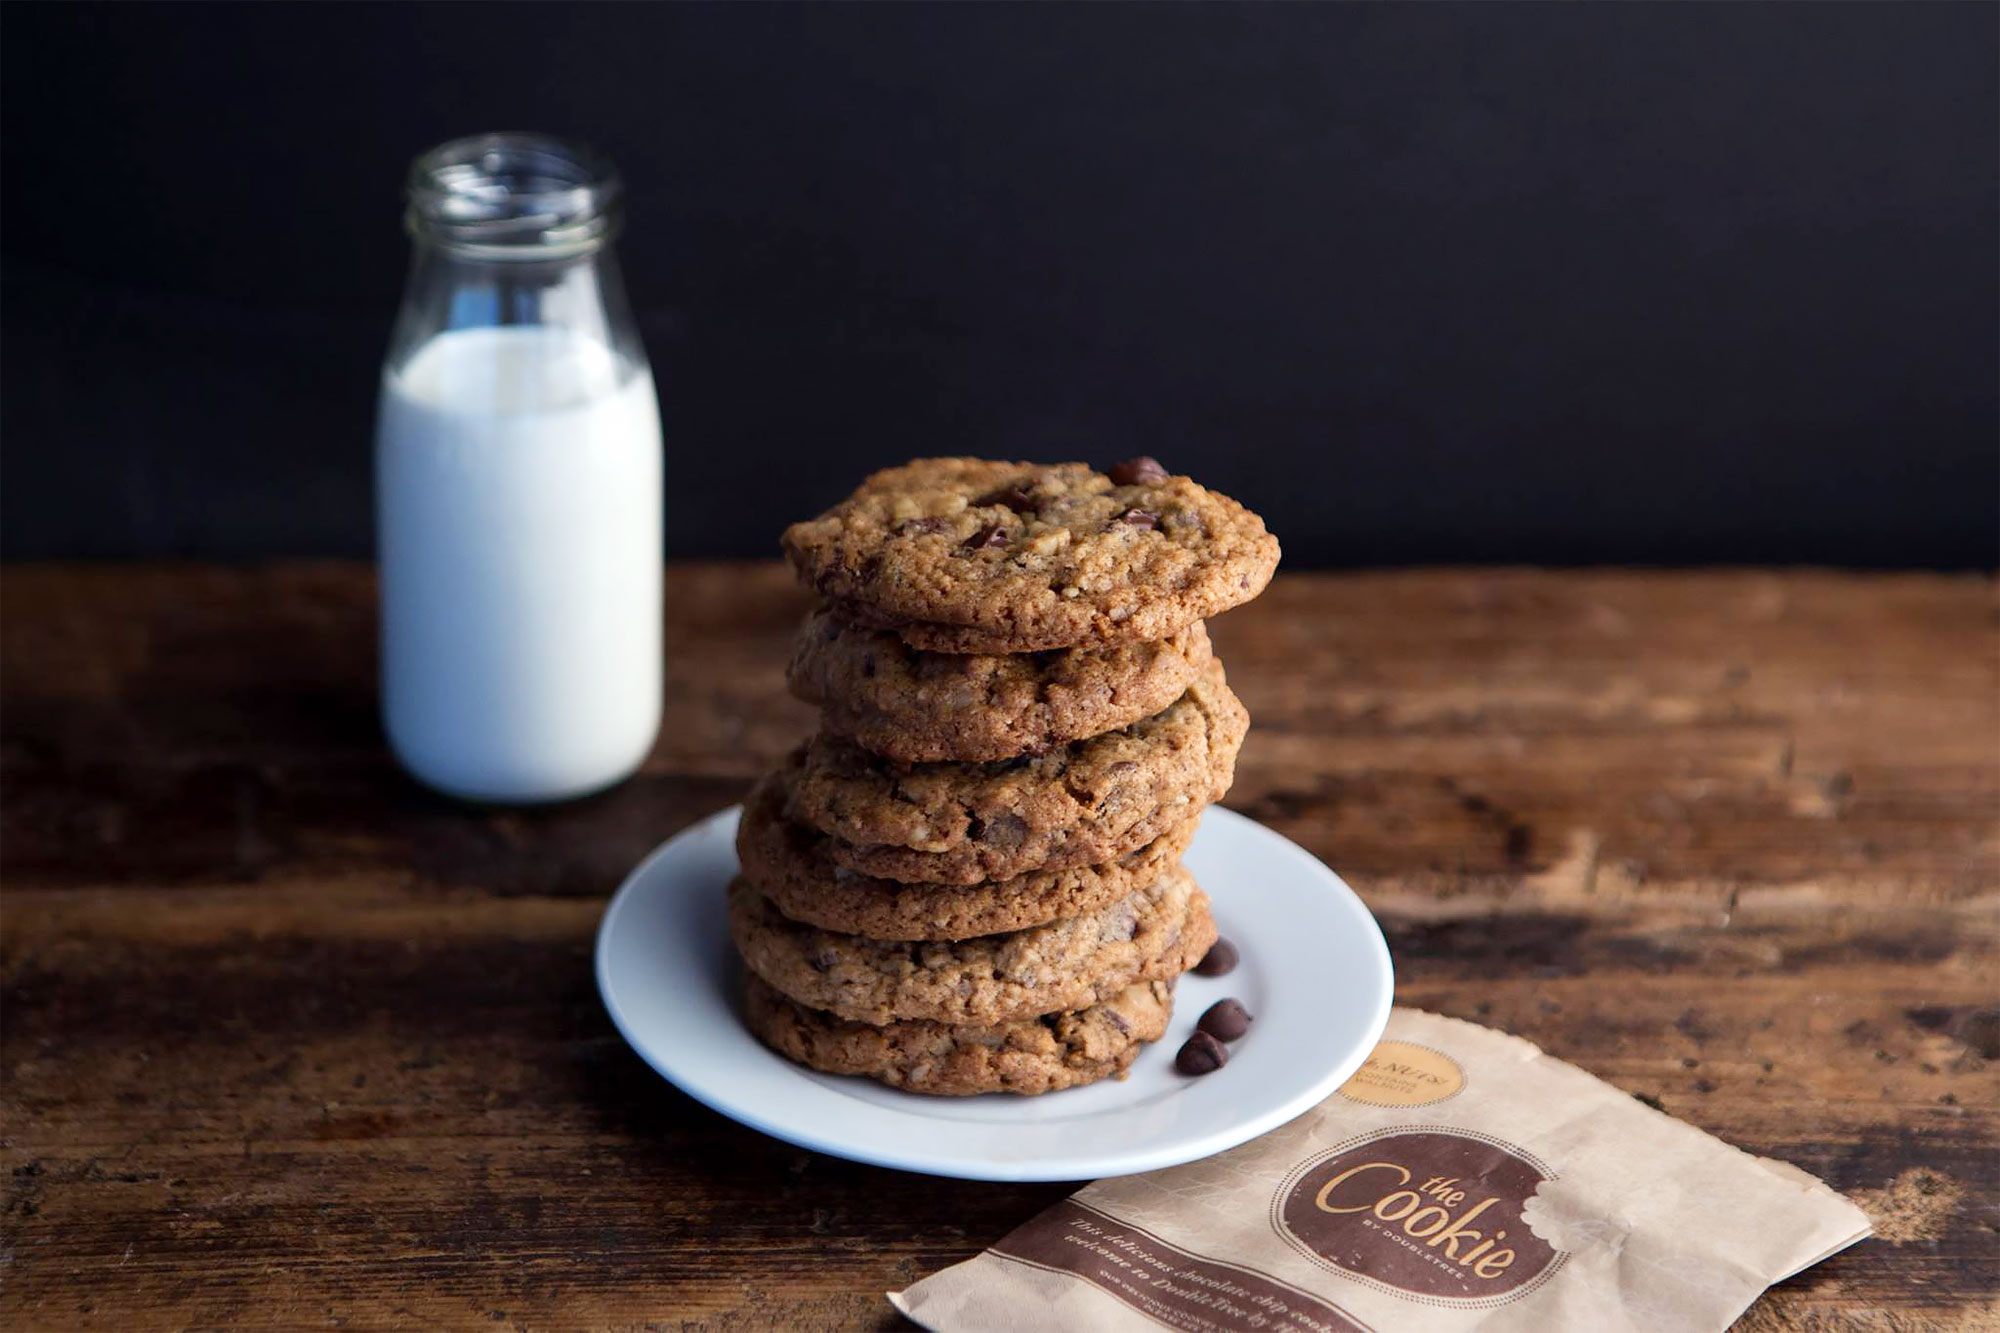 DoubleTree Hotels Are Giving Out Free Warm Cookies All Month to Anyone Who Stops In